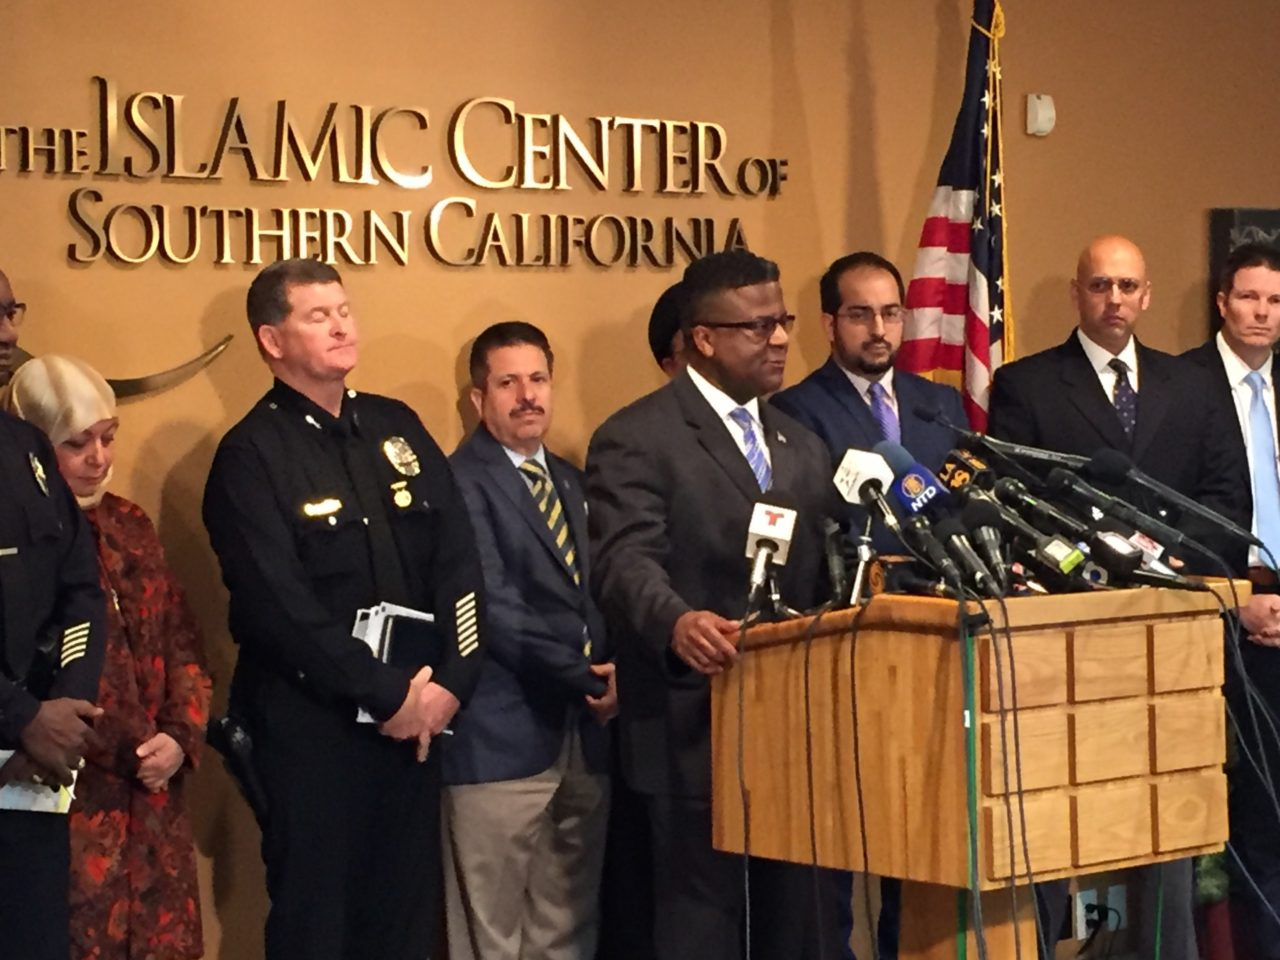 northridge muslim The islamic center of southern california fosters an american muslim identity and commitment to diversity, open-mindedness, civic engagement and community building.